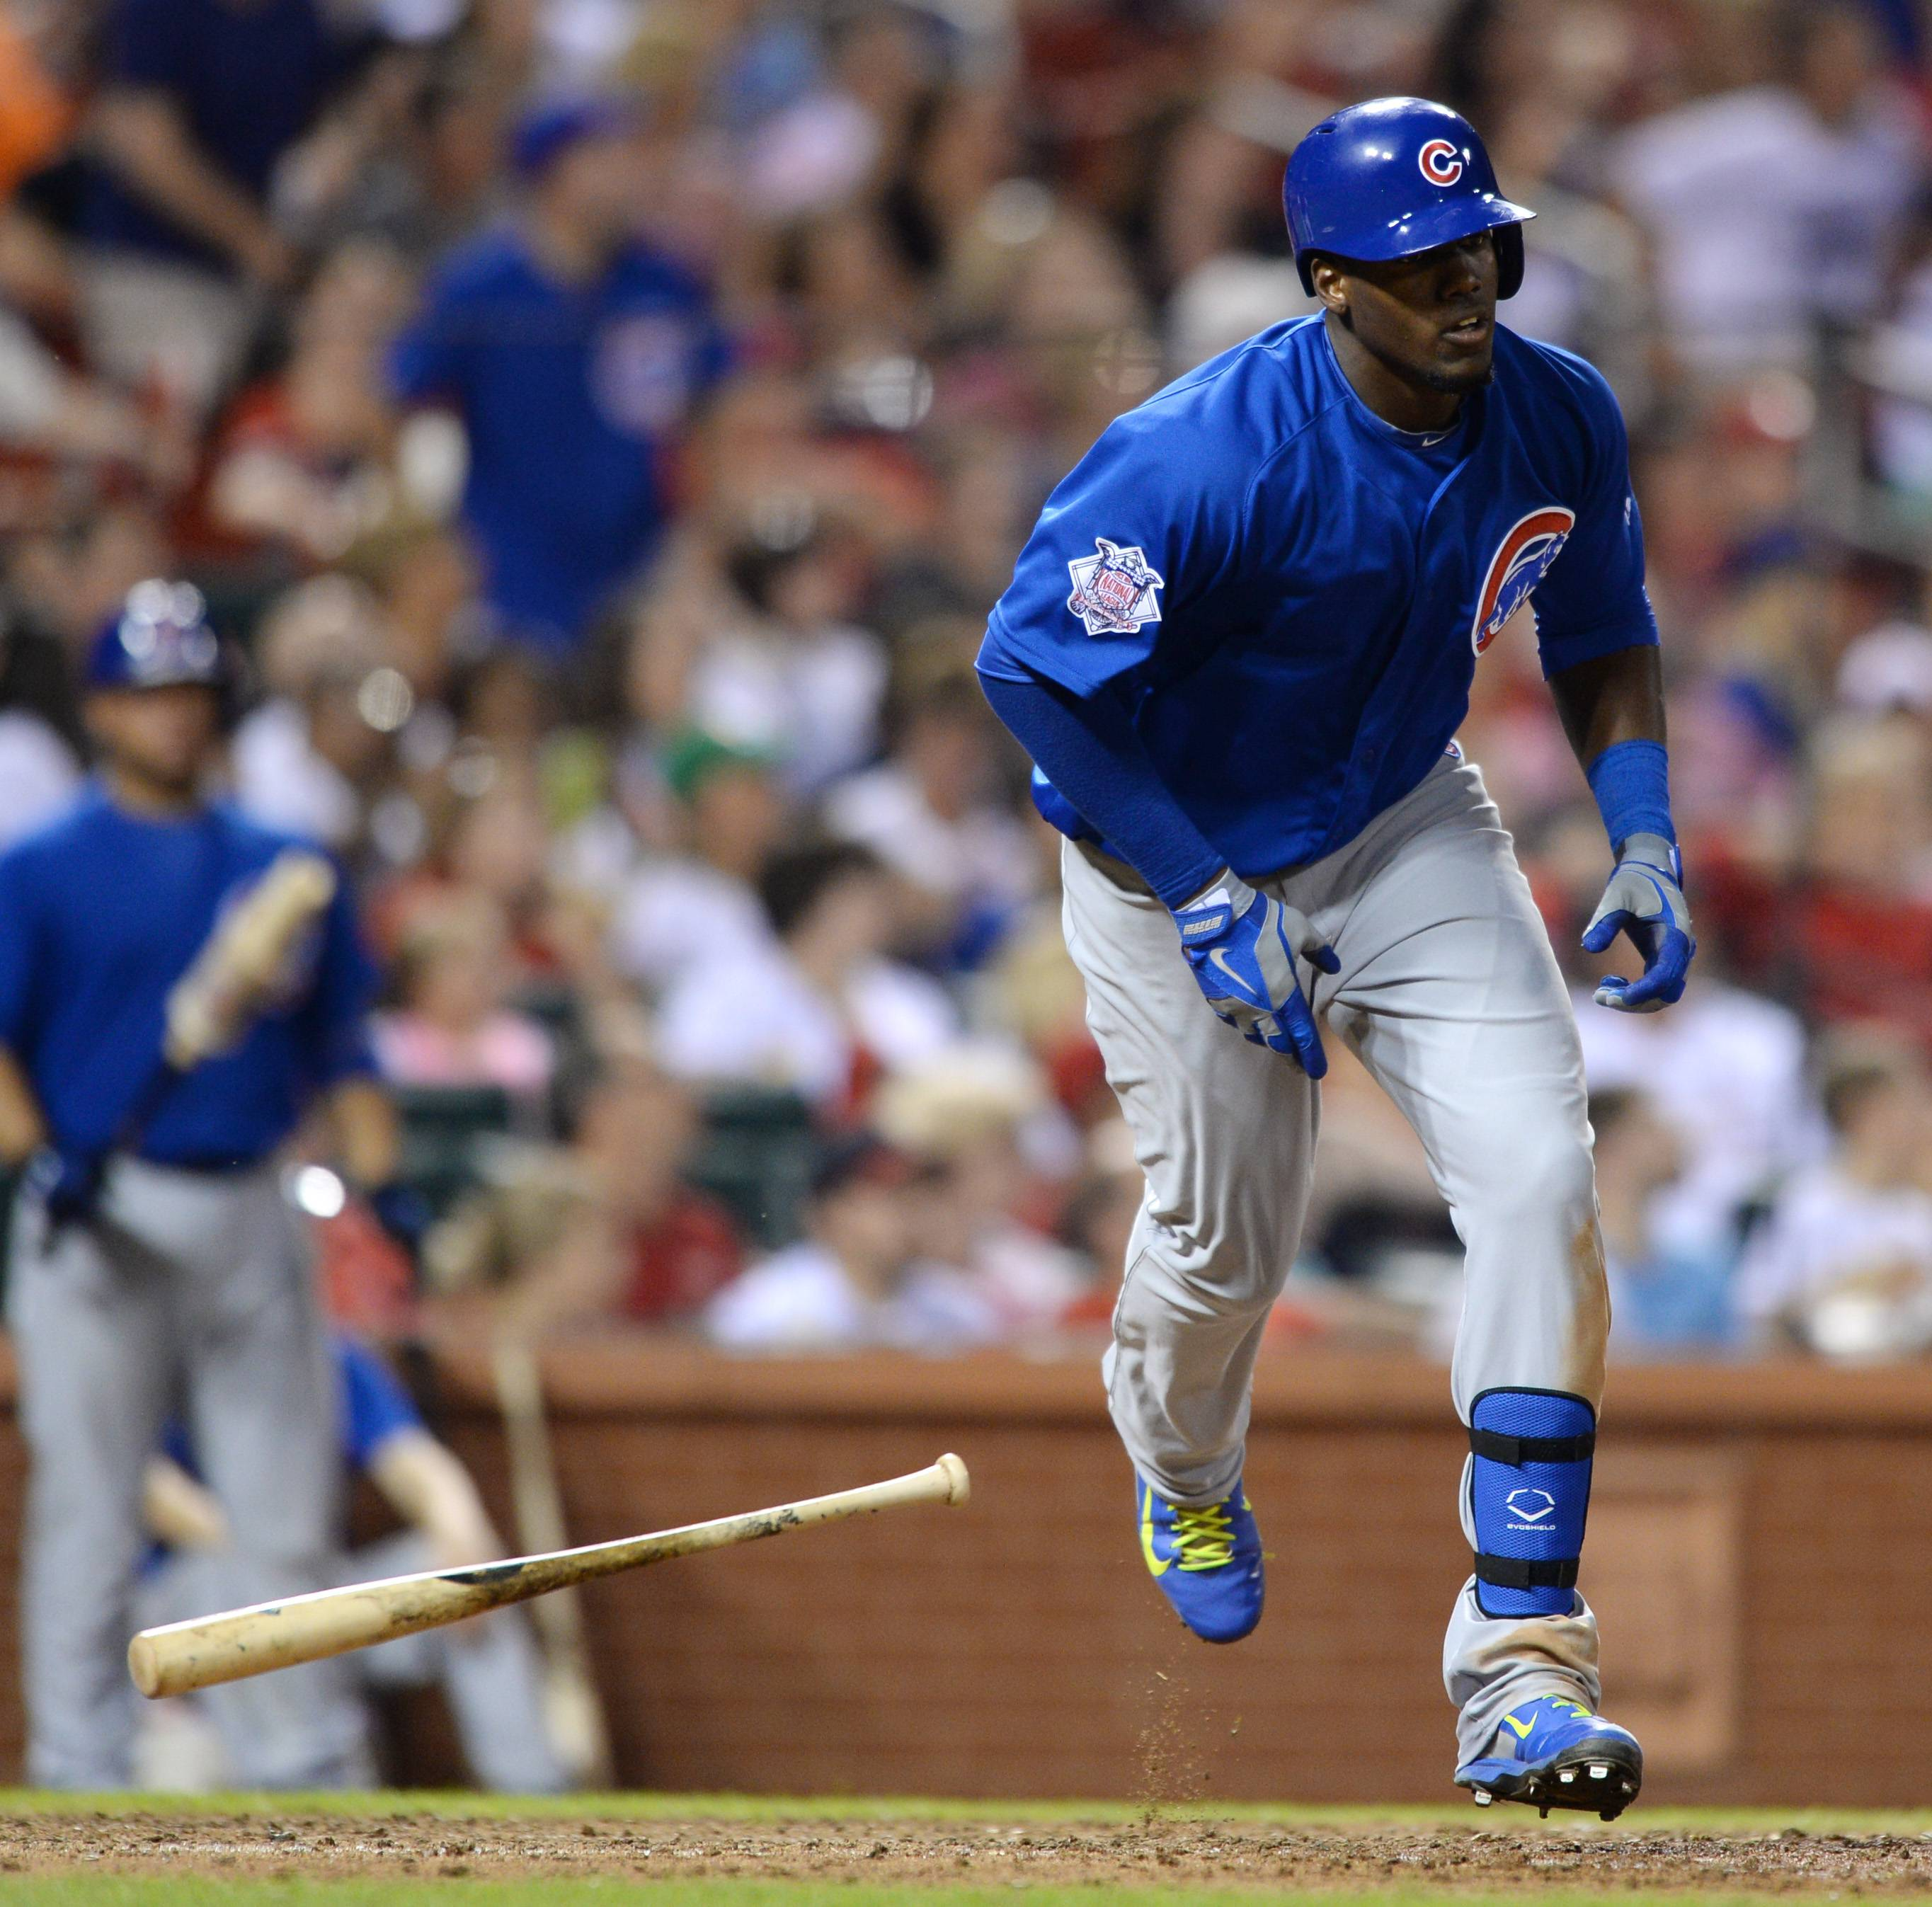 Cubs outfielder Jorge Soler heads to first on his 2-run home run Friday against the Cardinals in St. Louis.